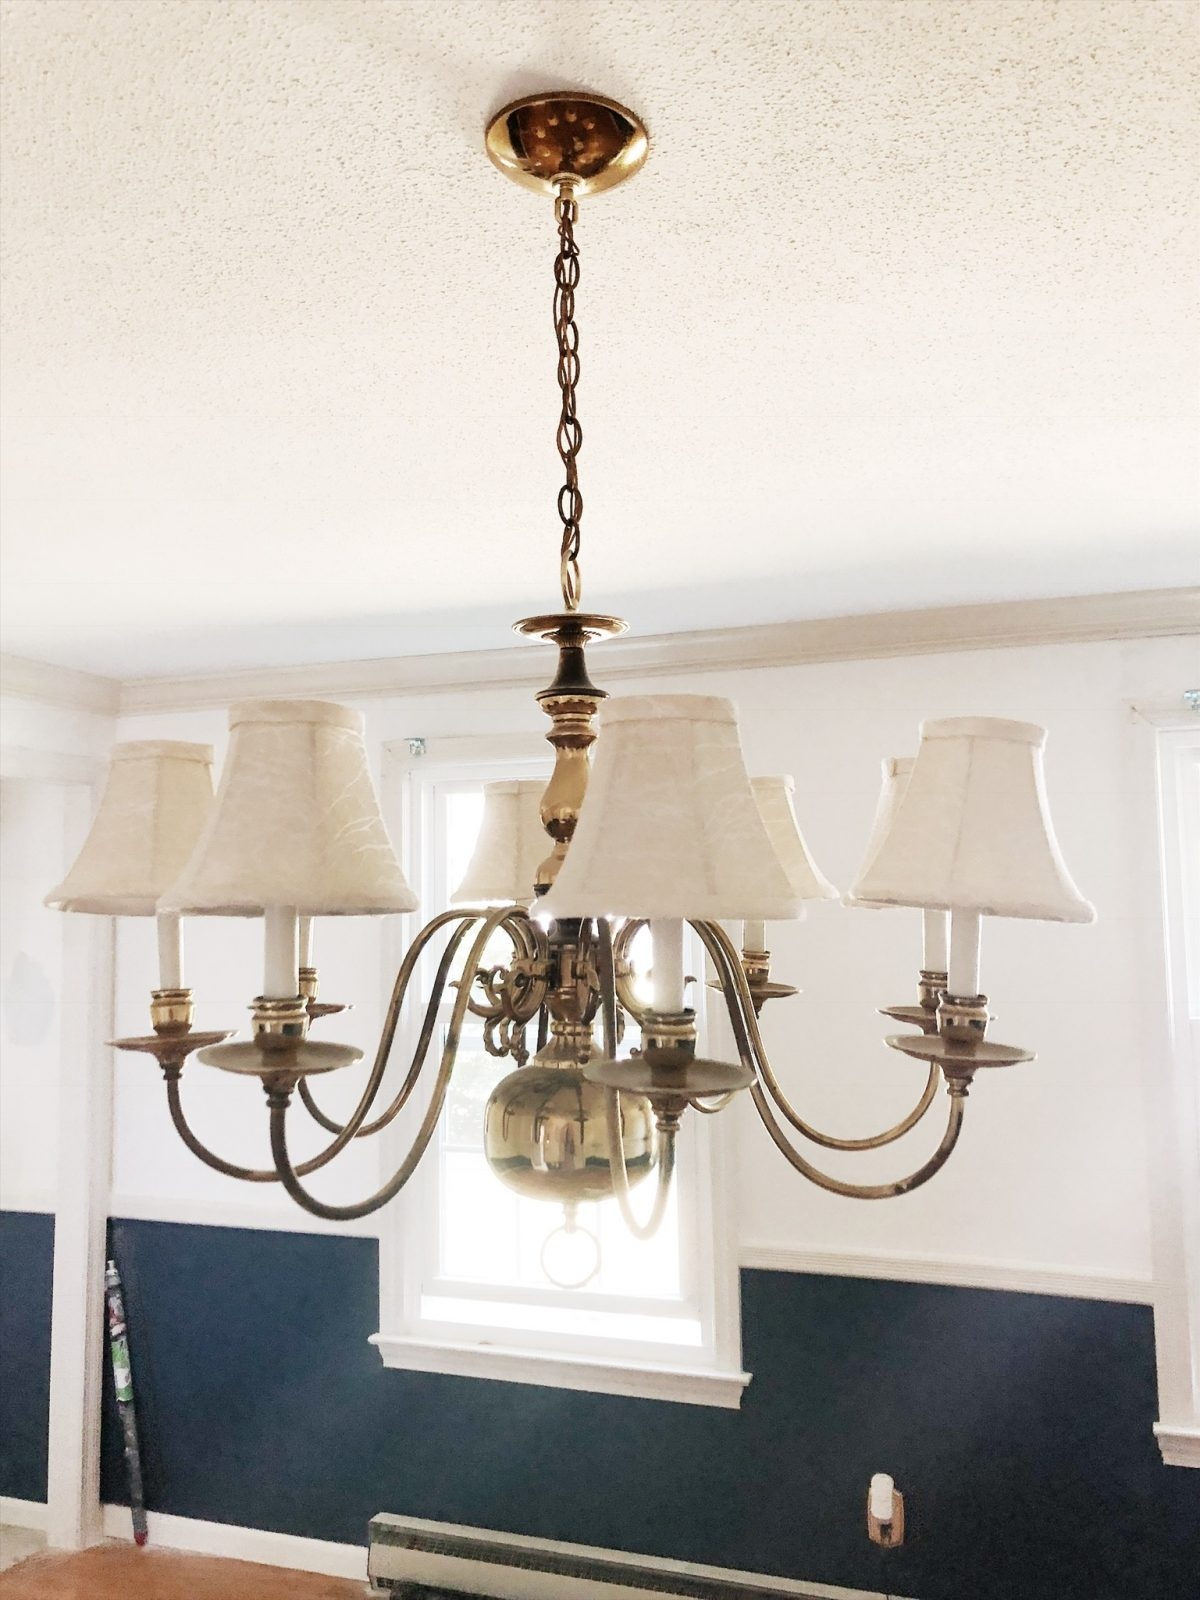 5 light shaded gold chandelier